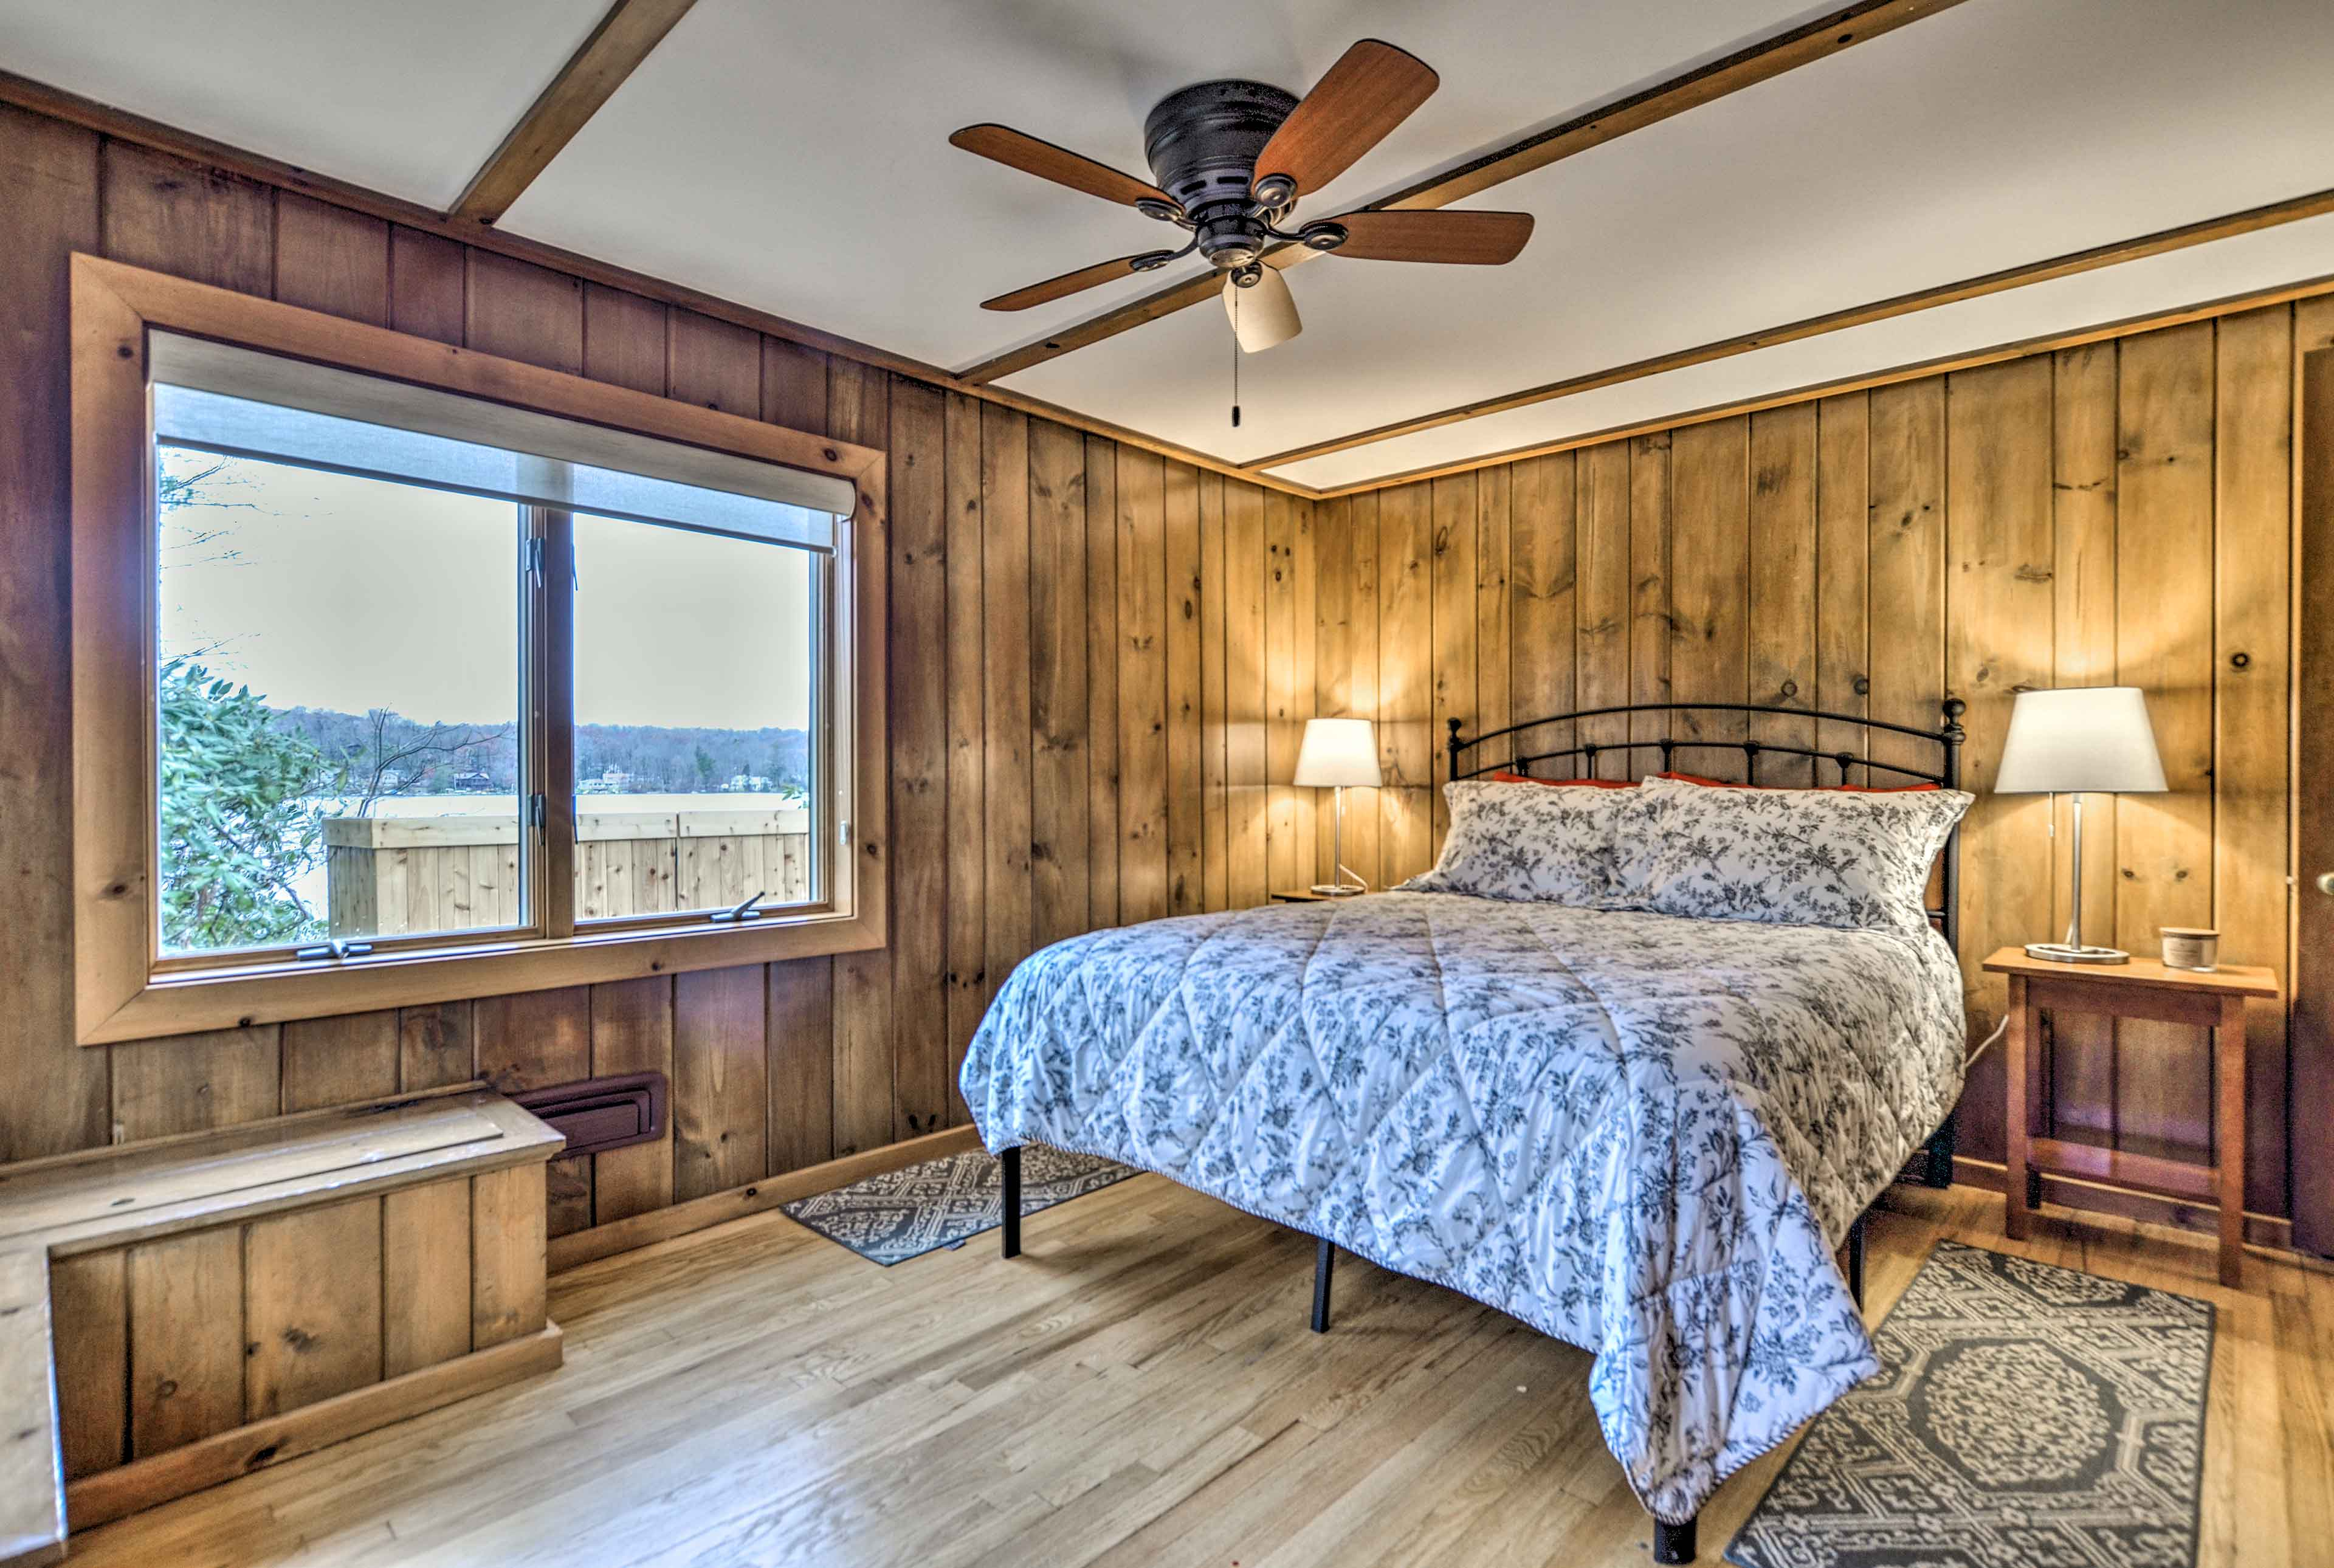 Fall into this queen bed after a day of canoeing on the lake.